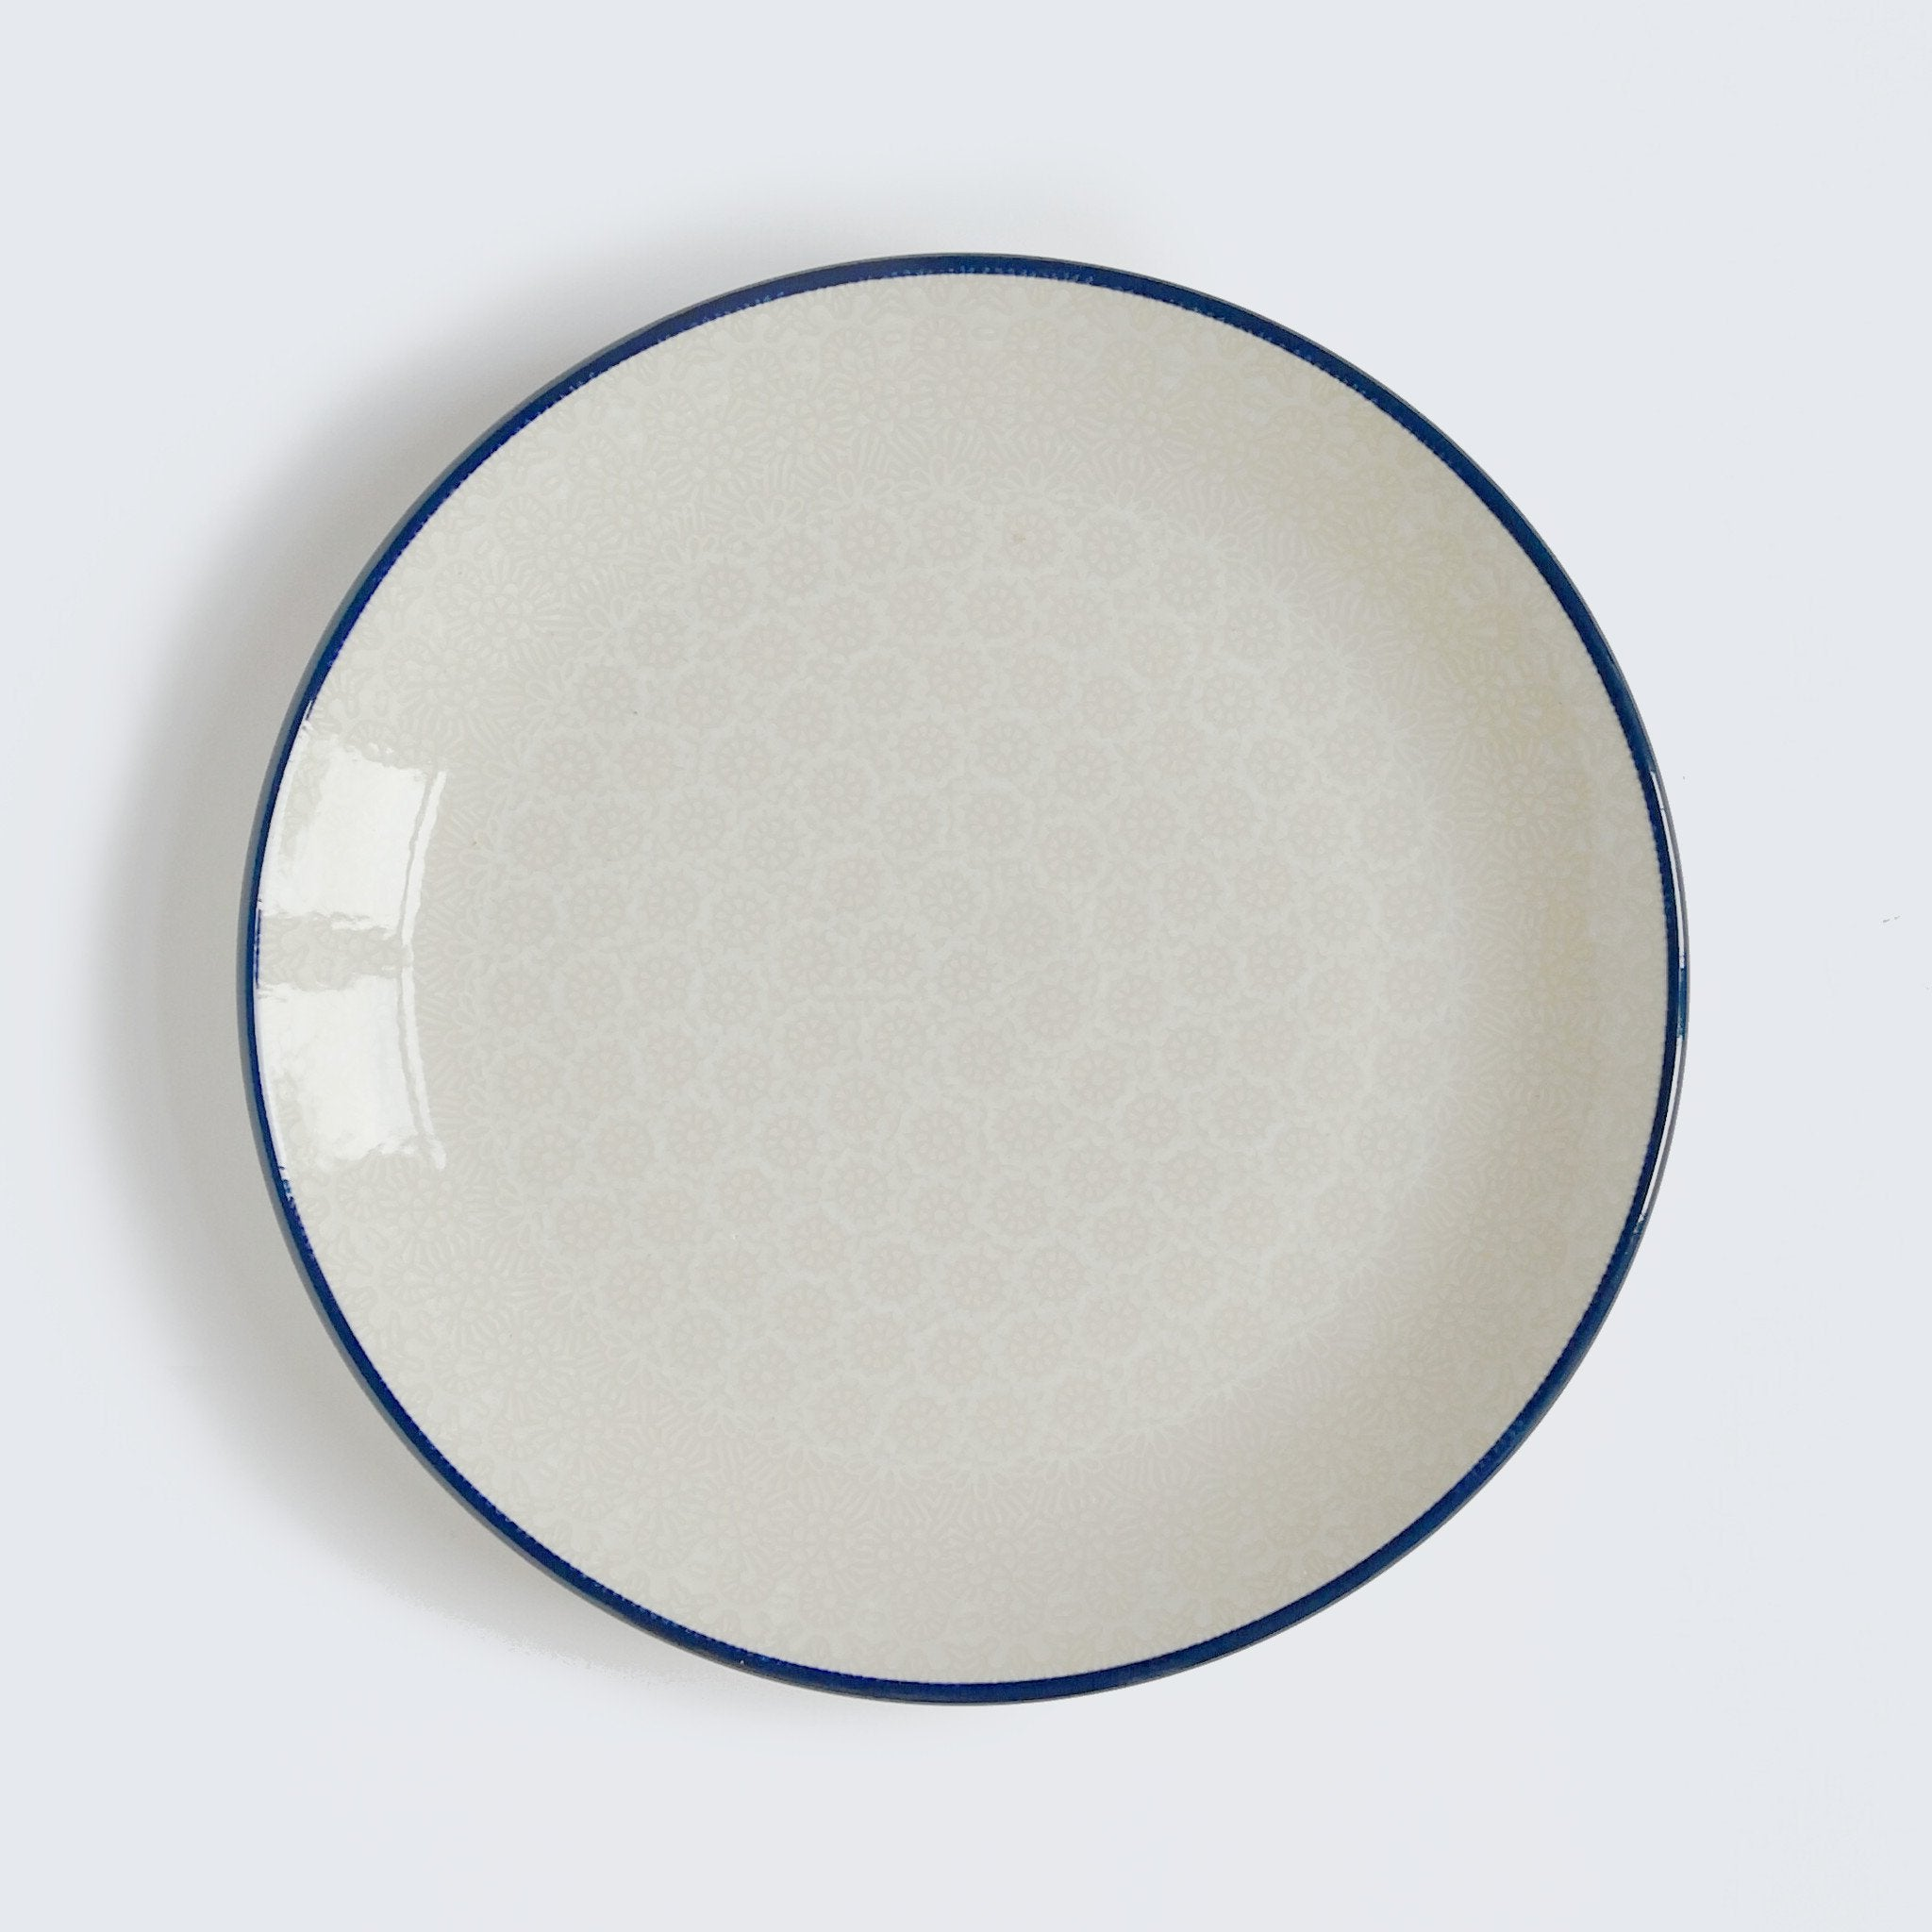 White and Cream Patterned Boleslawiec Stoneware Dinner Plate made by hand by Ceramika Artystyczna